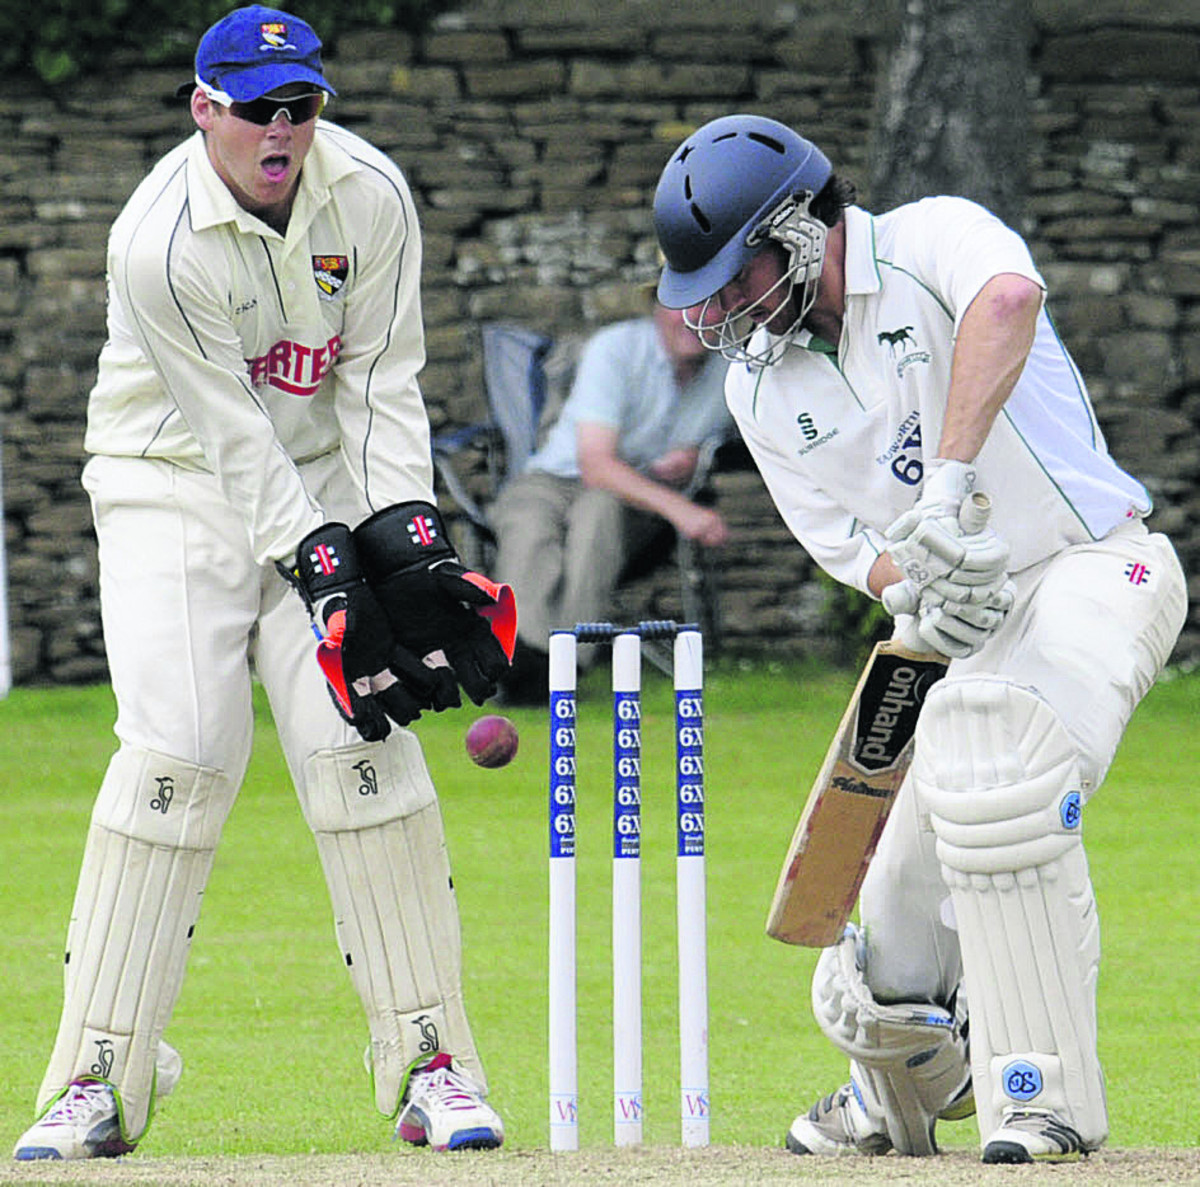 Wiltshire's Ed Young in batting action during yesterday's quarter final